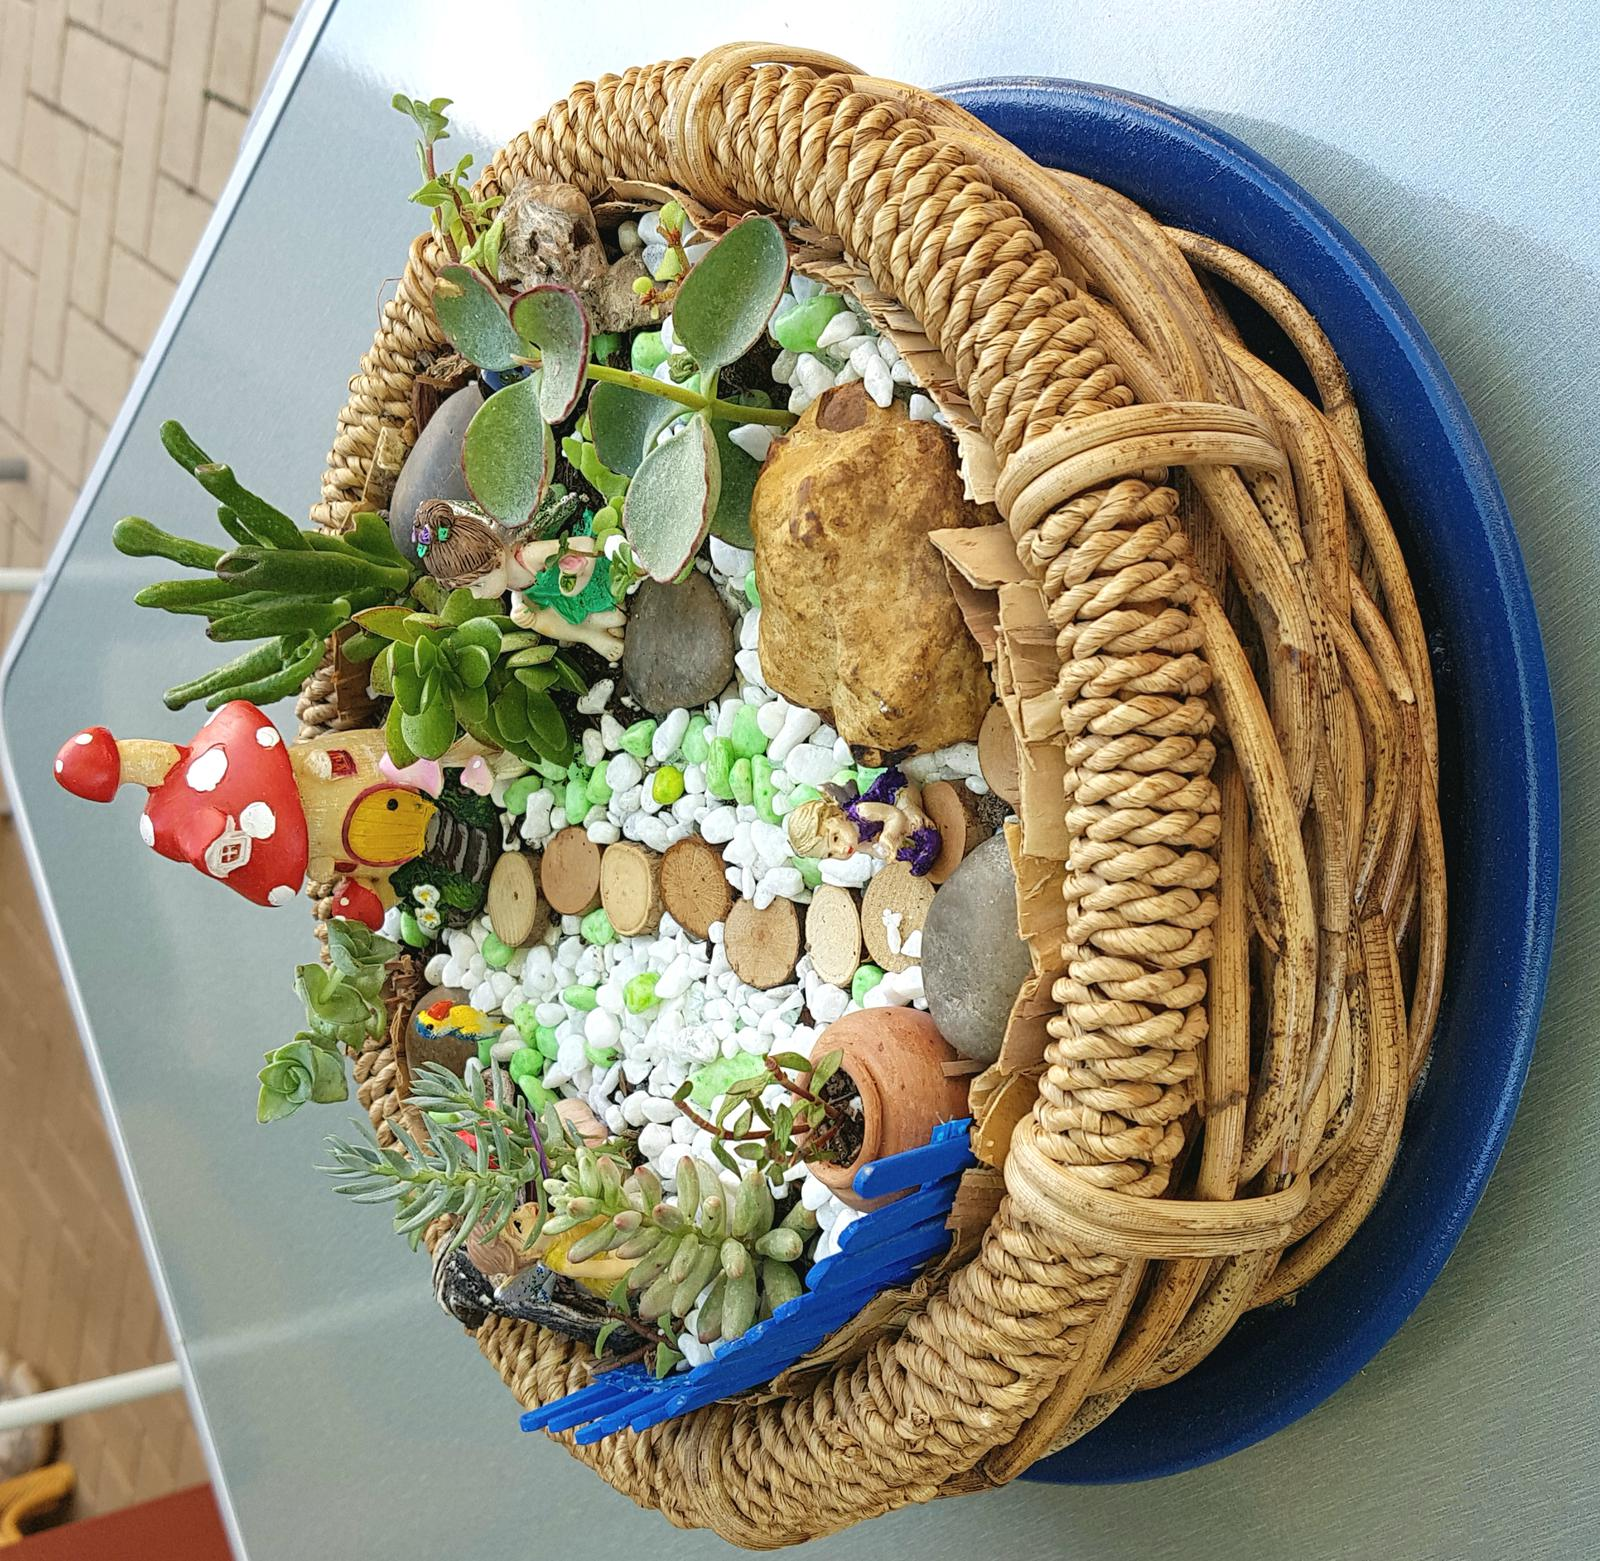 Fairy garden in basket